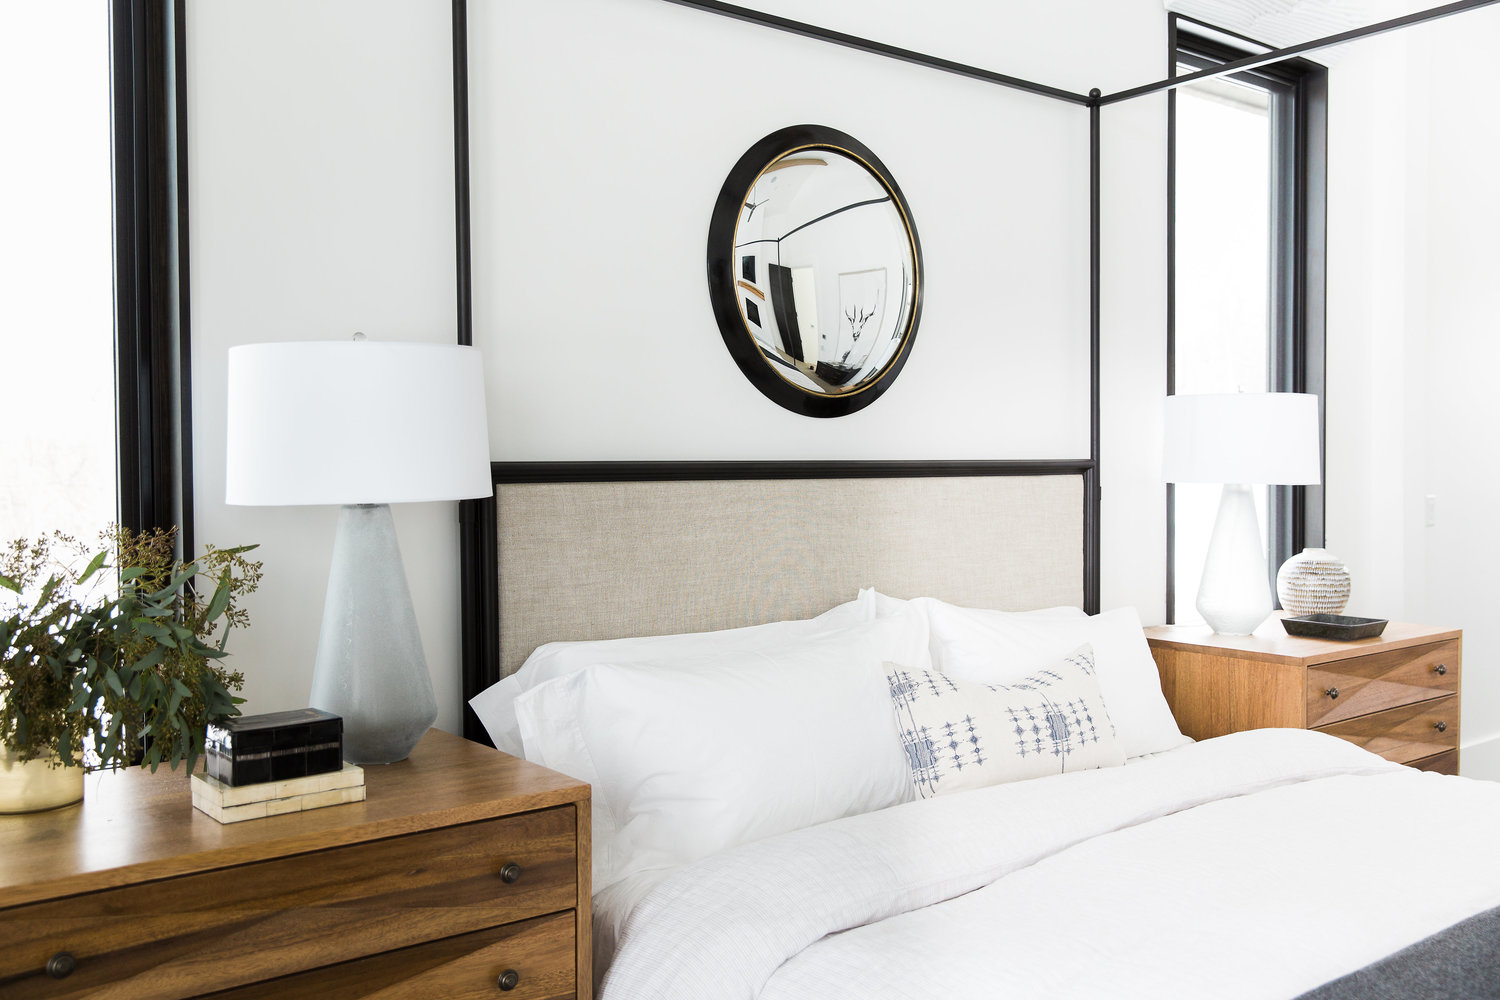 Two wooden nightstands on either side of the bed